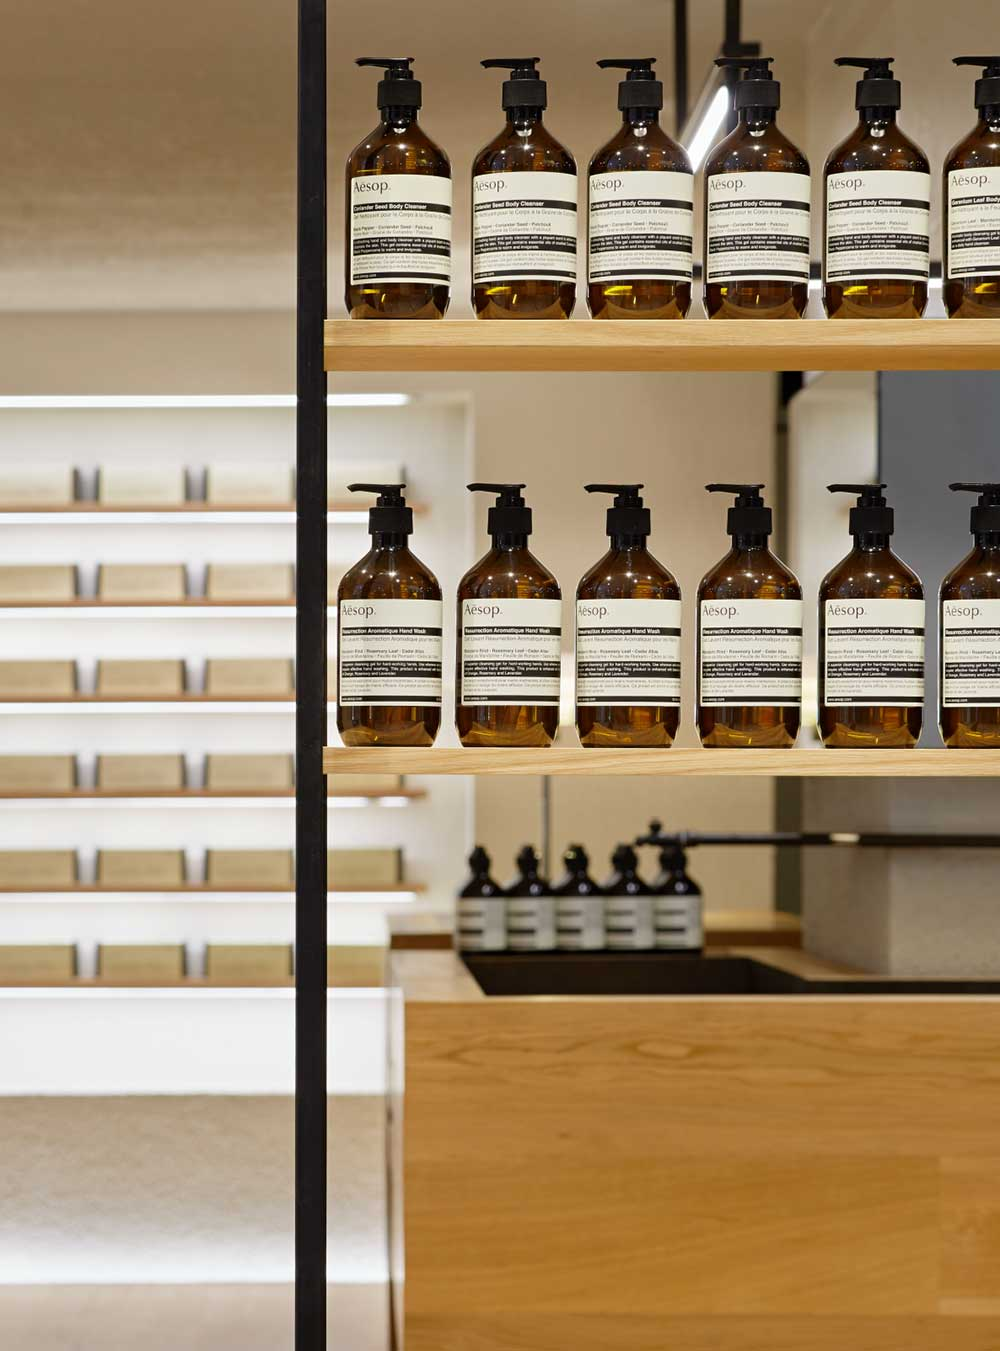 Aesop-Indooroopilly-Web-033.jpg